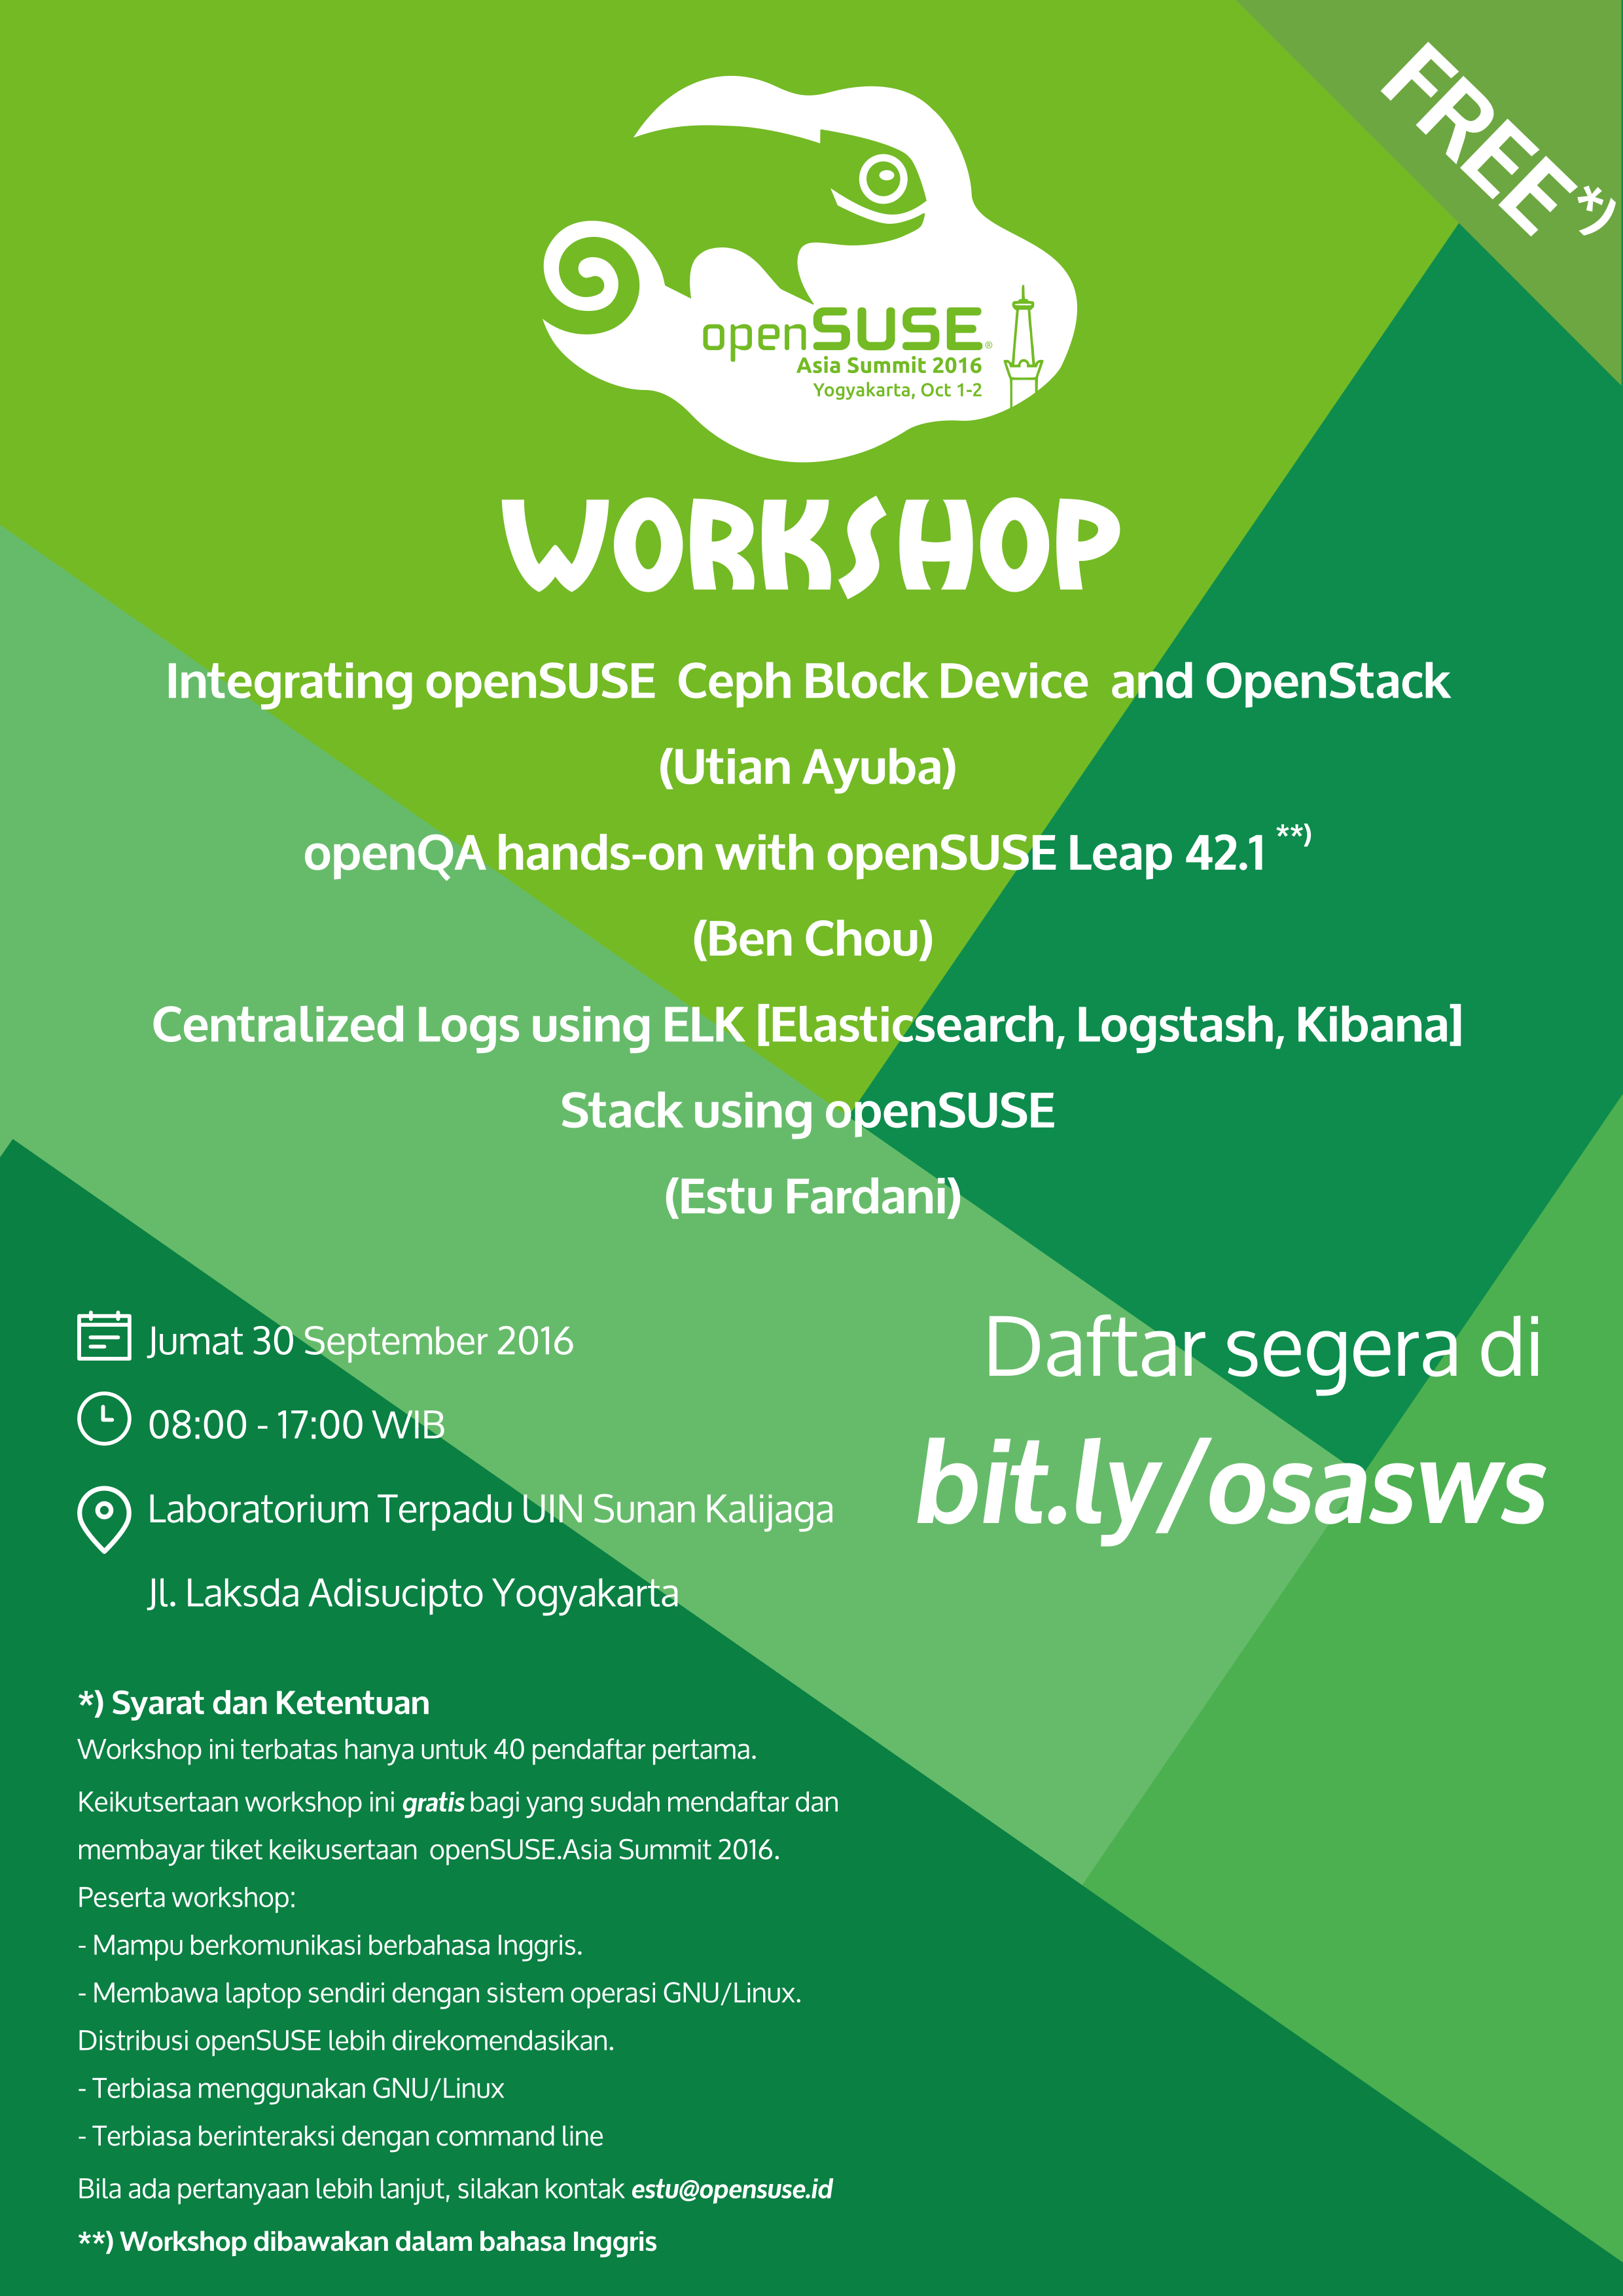 https://raw.githubusercontent.com/cho2/openSUSE-Asia-Summit-2016-artwork/master/poster/CETAK%20%26%20Rilis/workshop.png